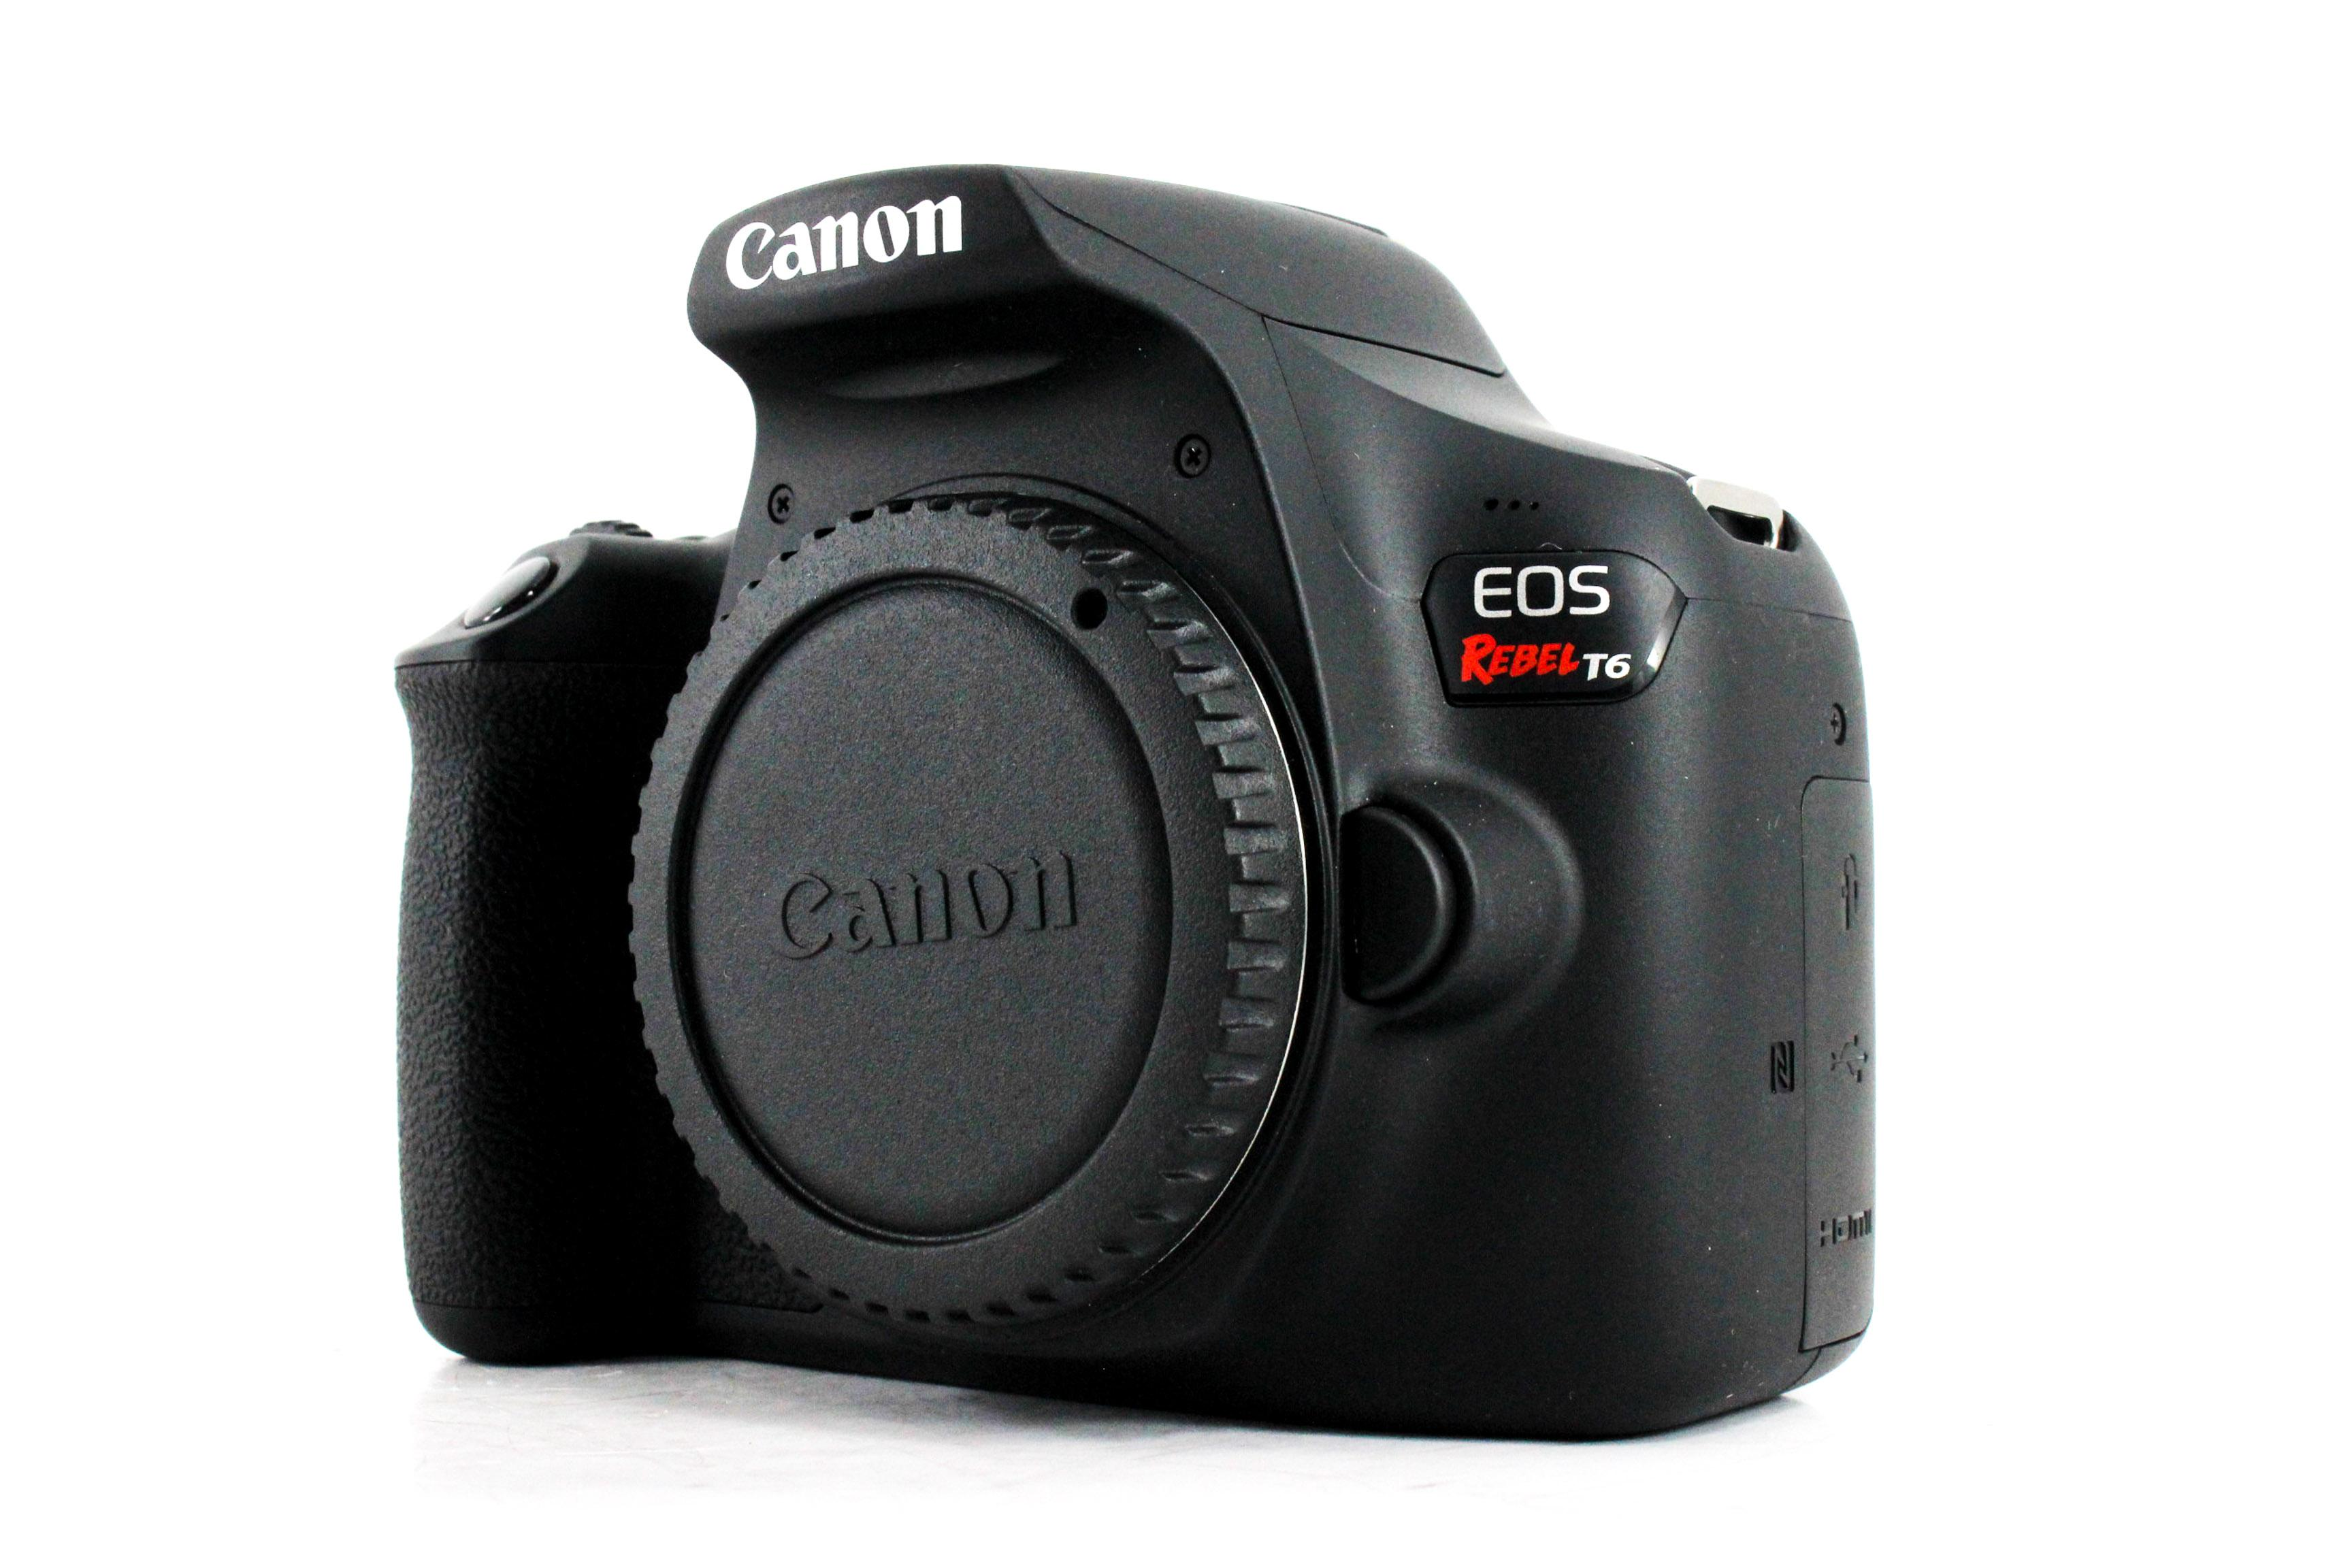 Why the Canon EOS Rebel T6 is a Great Beginner Camera